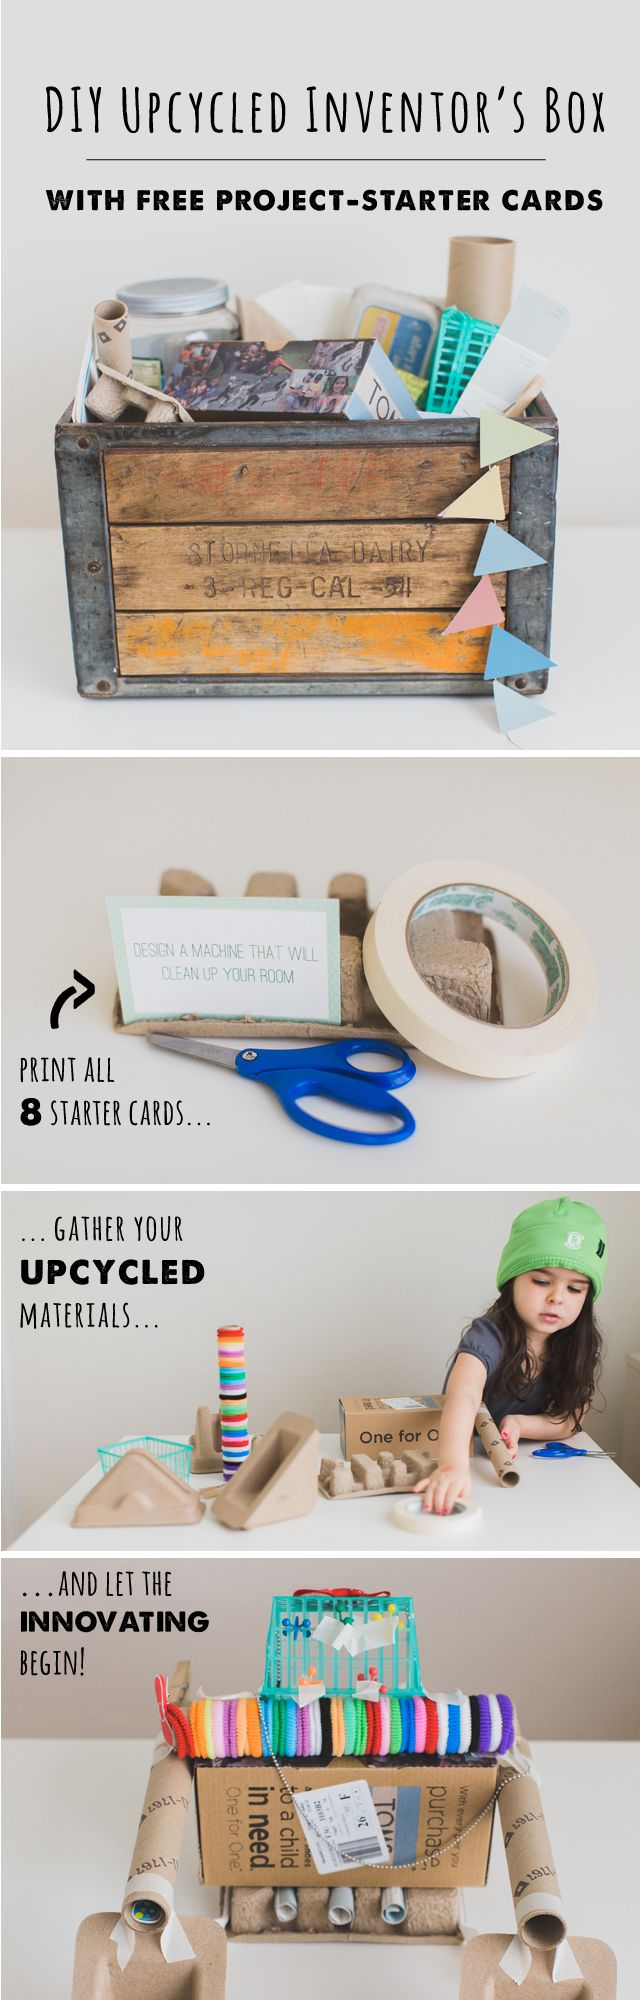 Upcycled Inventor's Box by modernparentsmessykids: Awesome activity for teaching kids about recycling and creativity. Be sure to get the free printable idea cards! #Kids #Play #Invention #Creativity #Upcycle